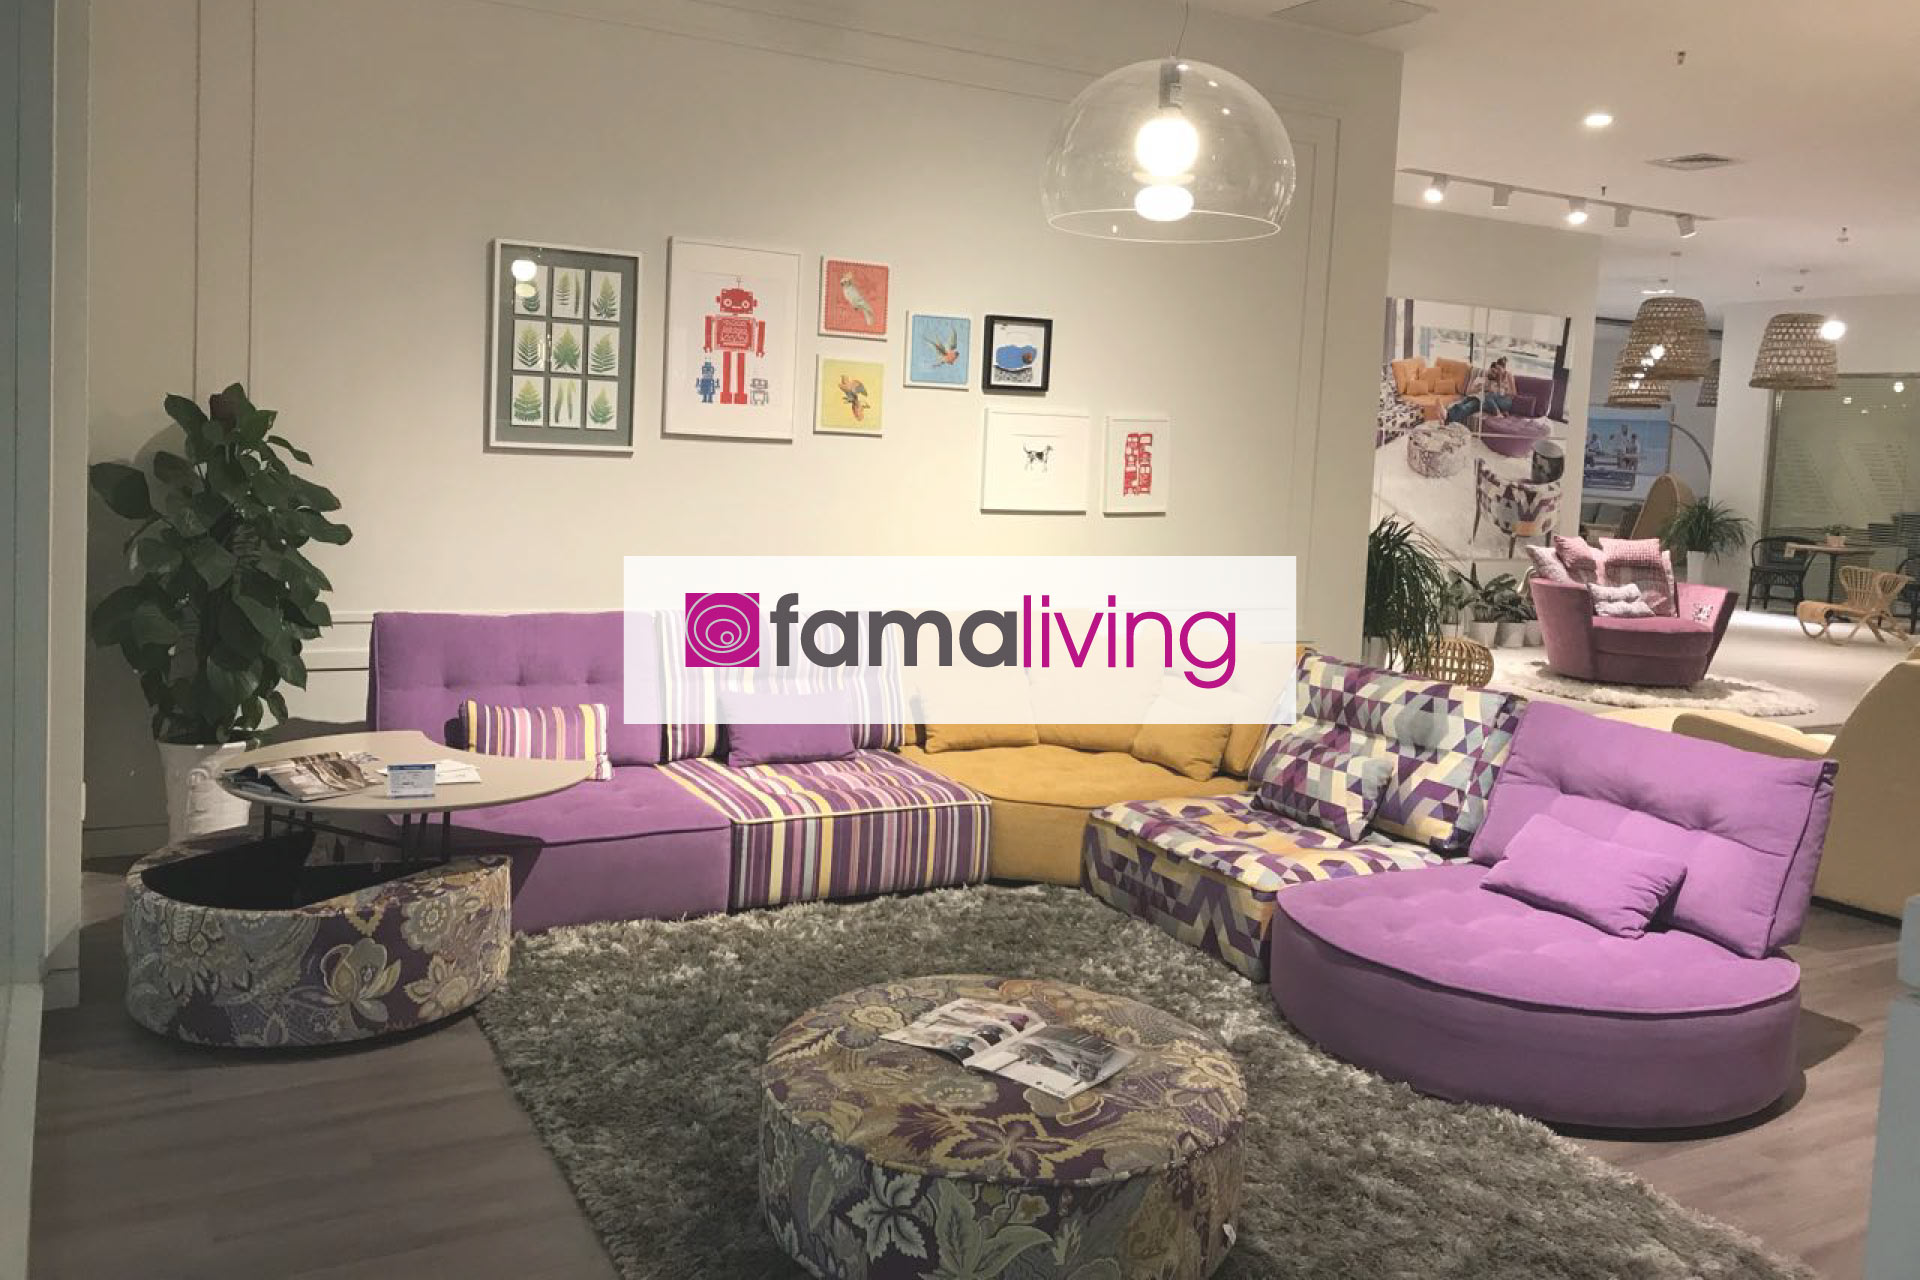 https://www.famaliving.com/shangdong-en